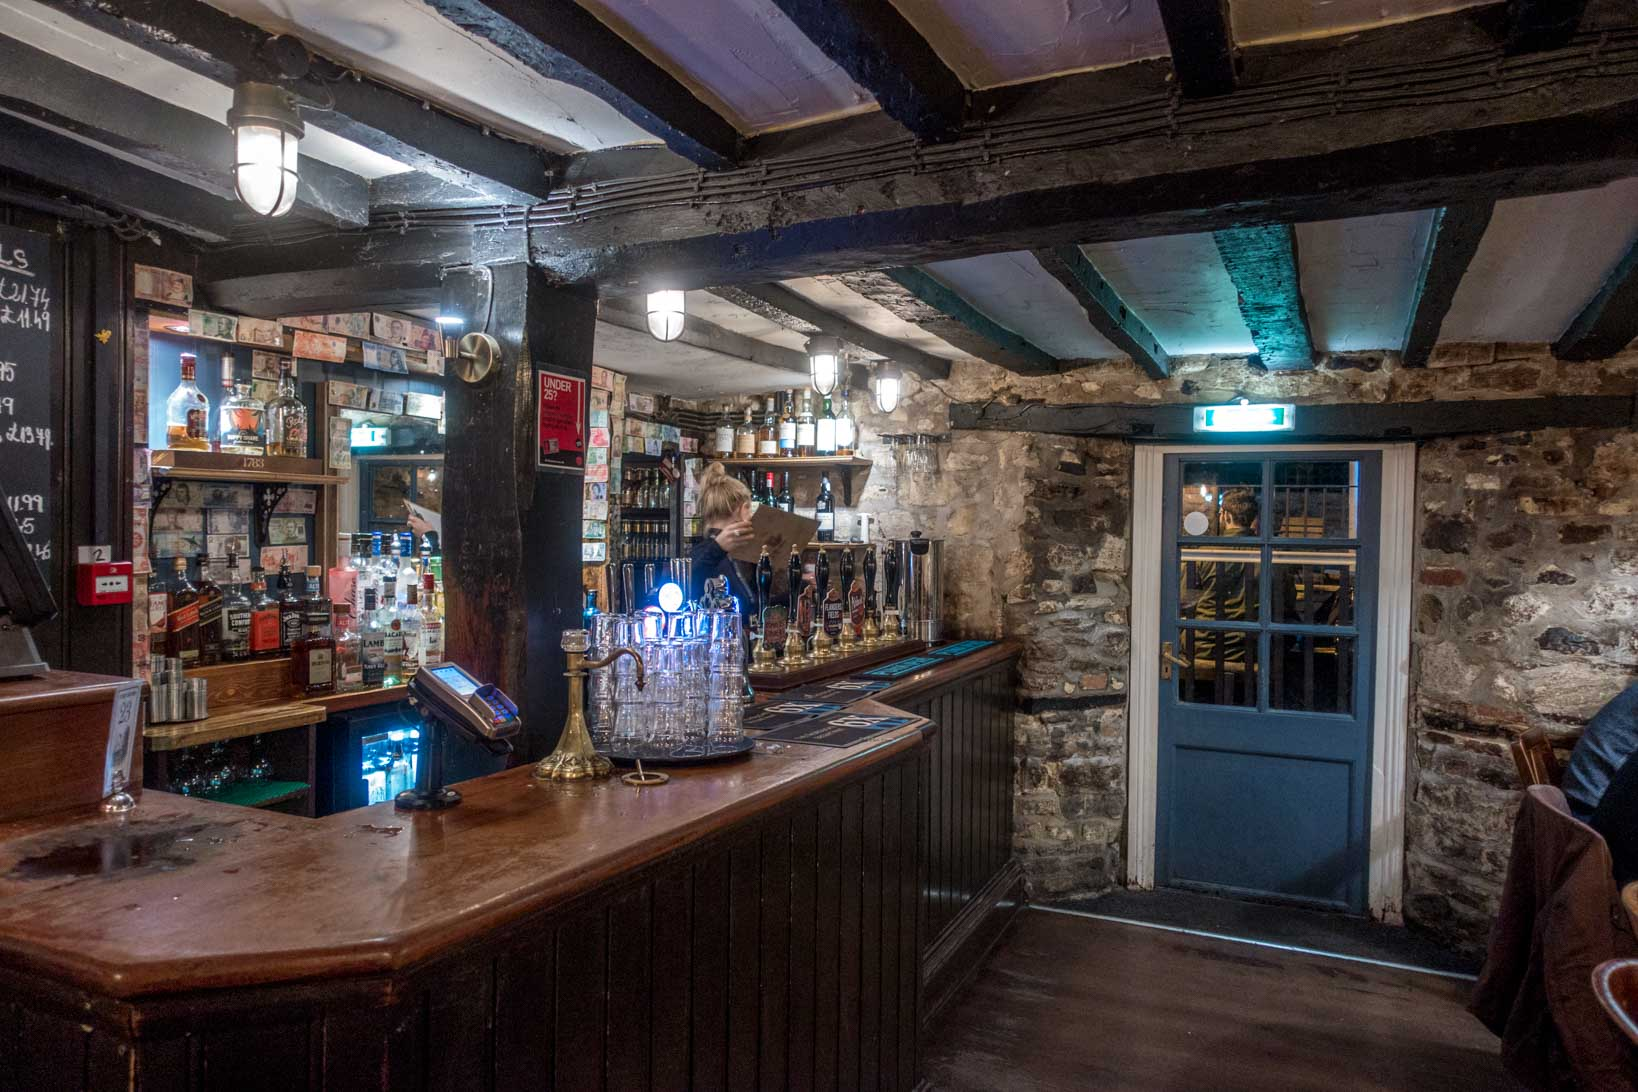 Bar, stone walls, and old wooden beams inside the historic Turf Tavern in Oxford, England